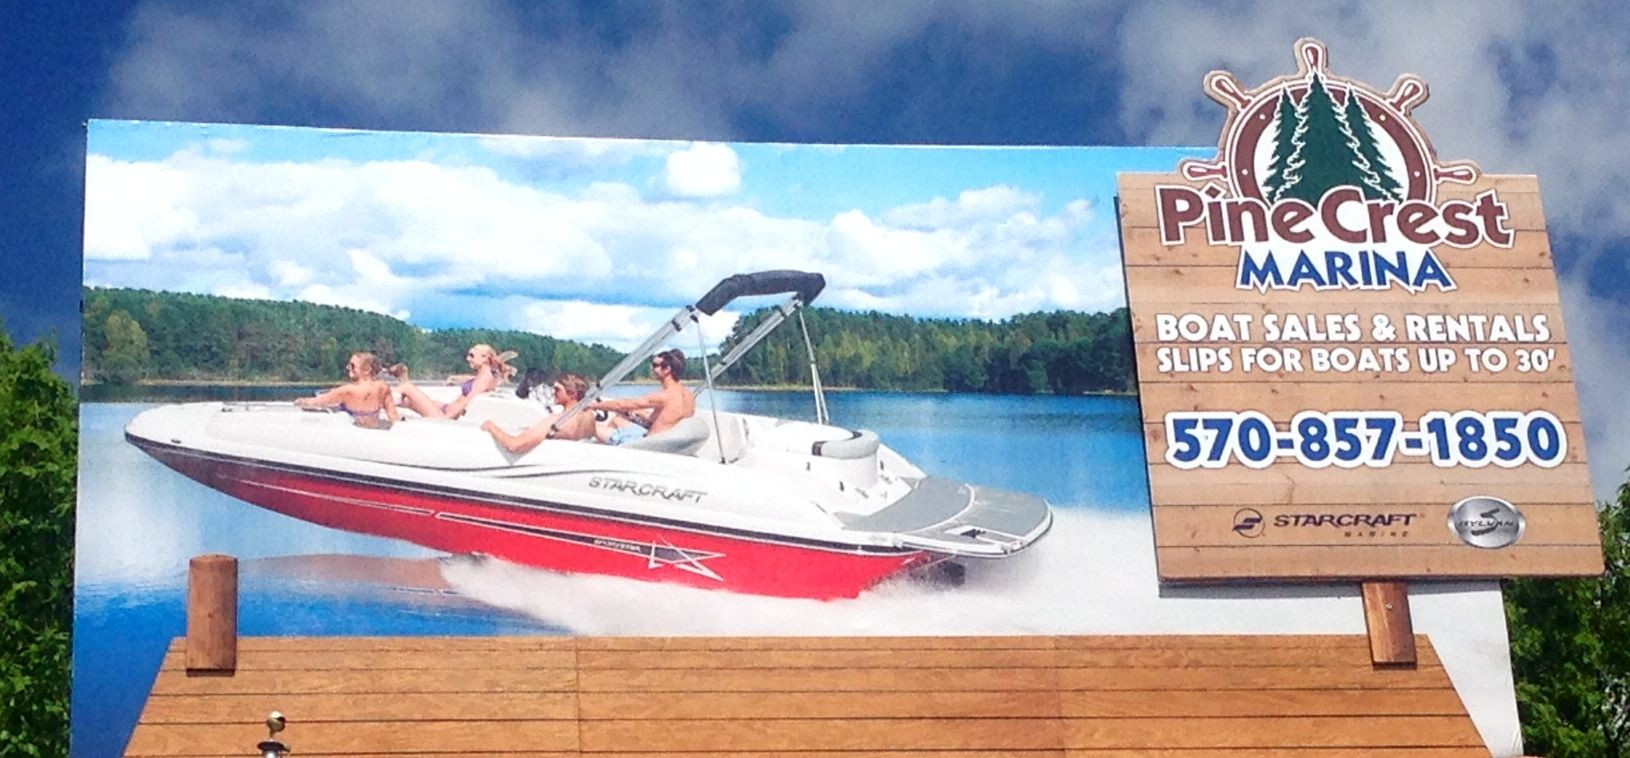 Pine crest marina boat sales and rentals on lake